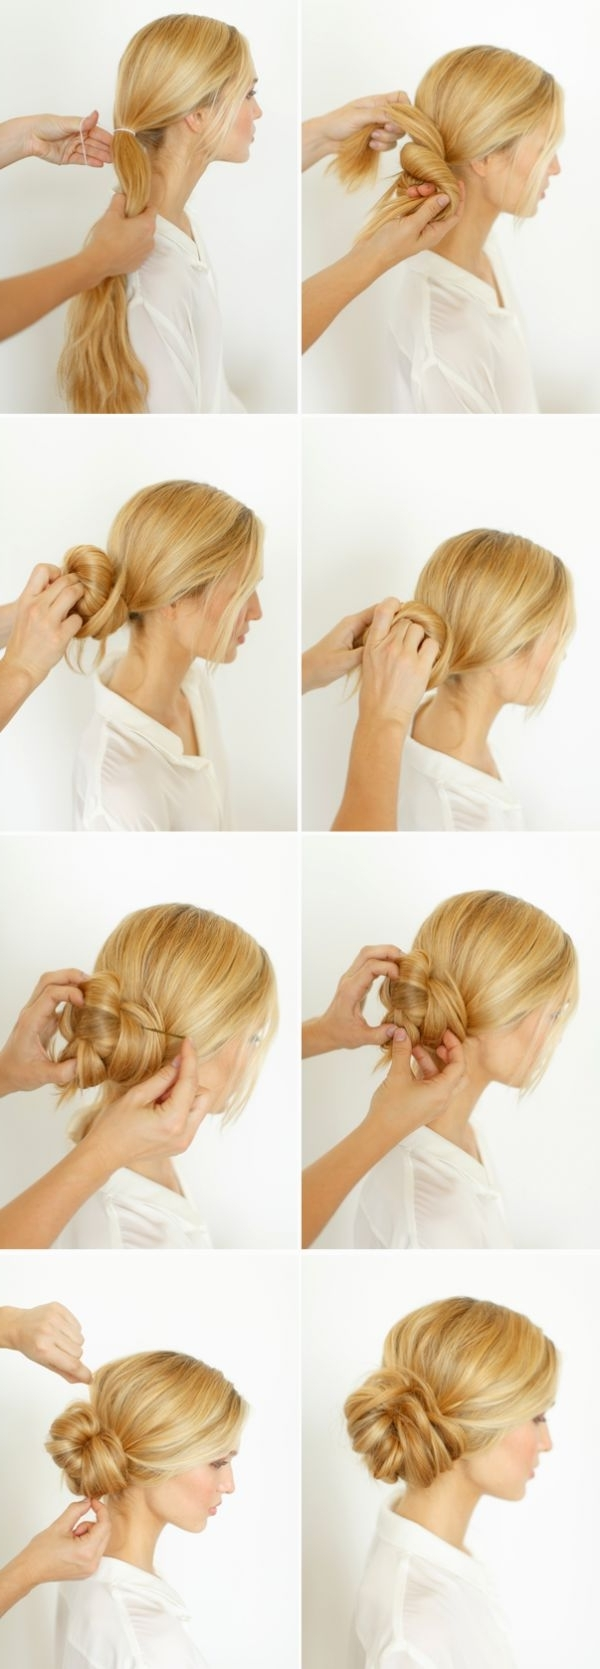 Best And Newest Diy Wedding Updos For Long Hair Throughout Diy Wedding Hairstyles Best Bridal At Home Tutorial You Tube (View 4 of 15)